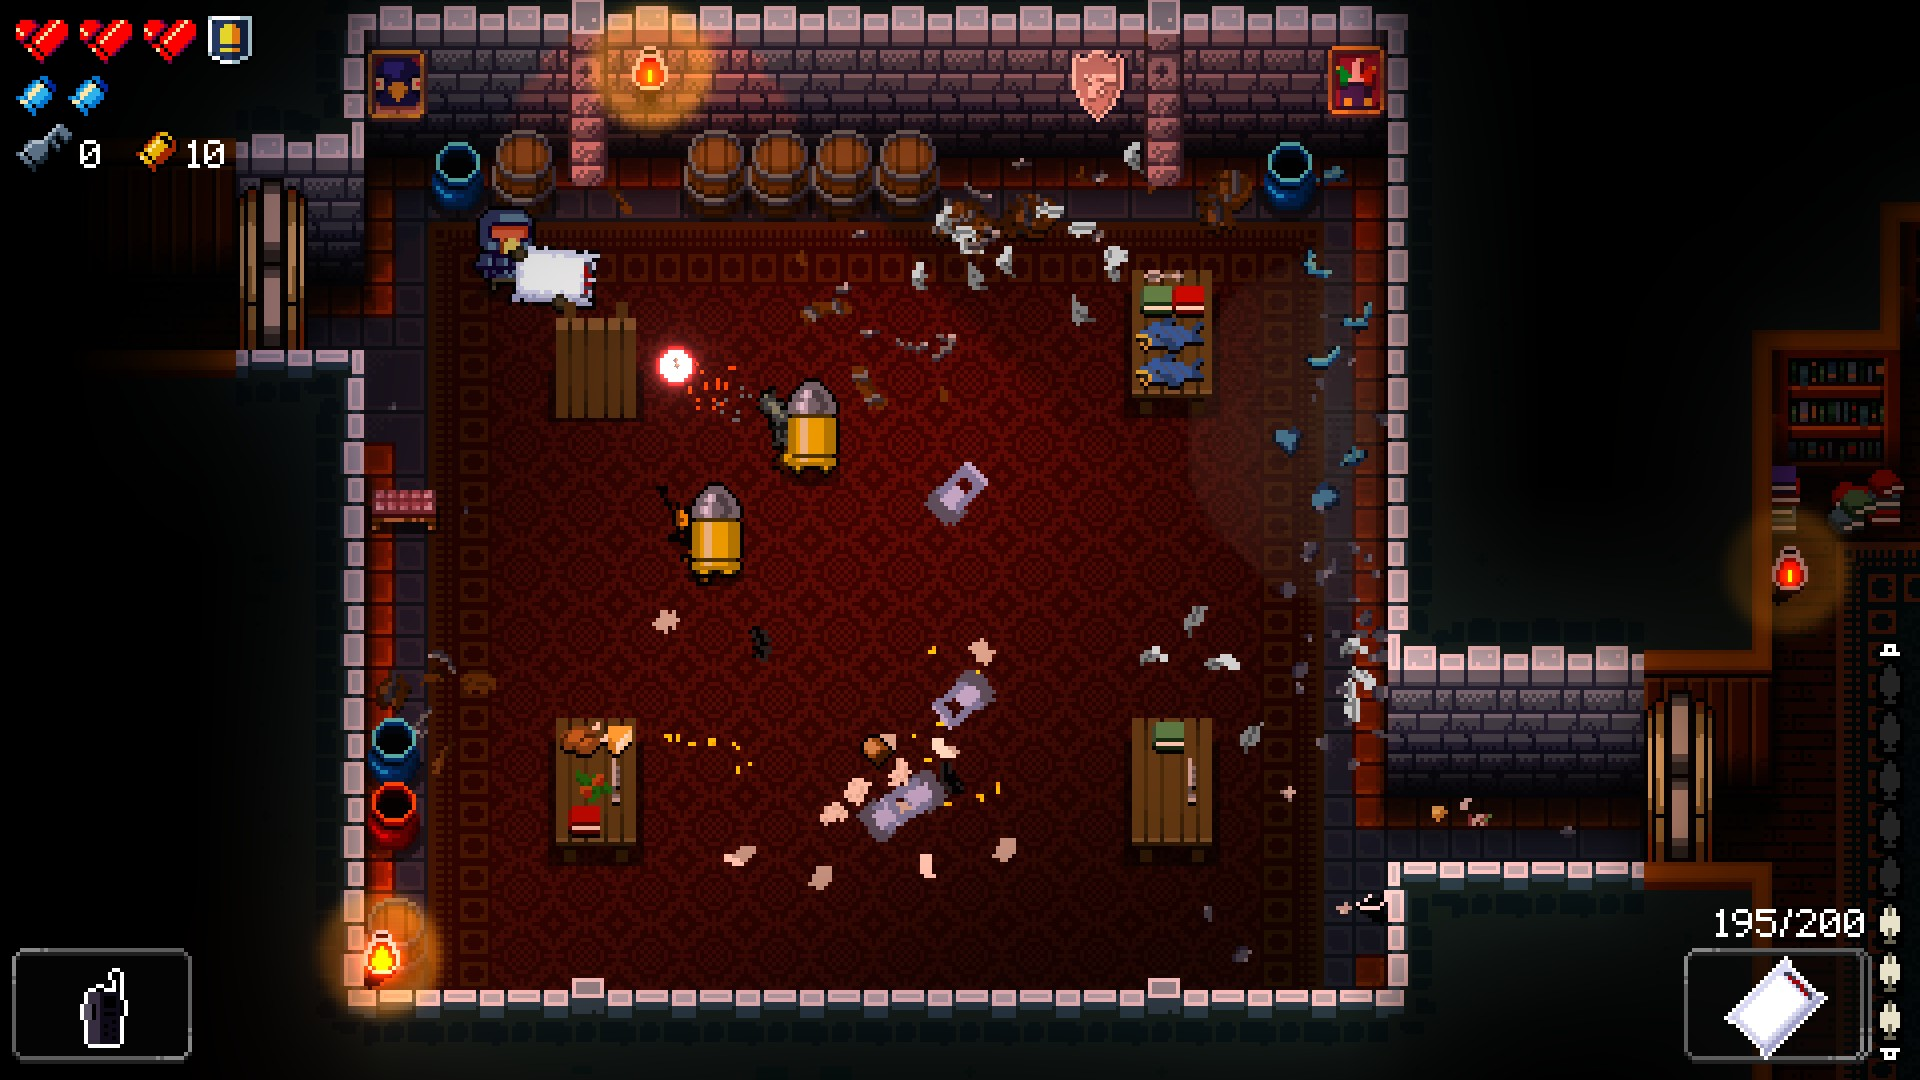 Enter The Gungeon Tips How To Find Secret Rooms